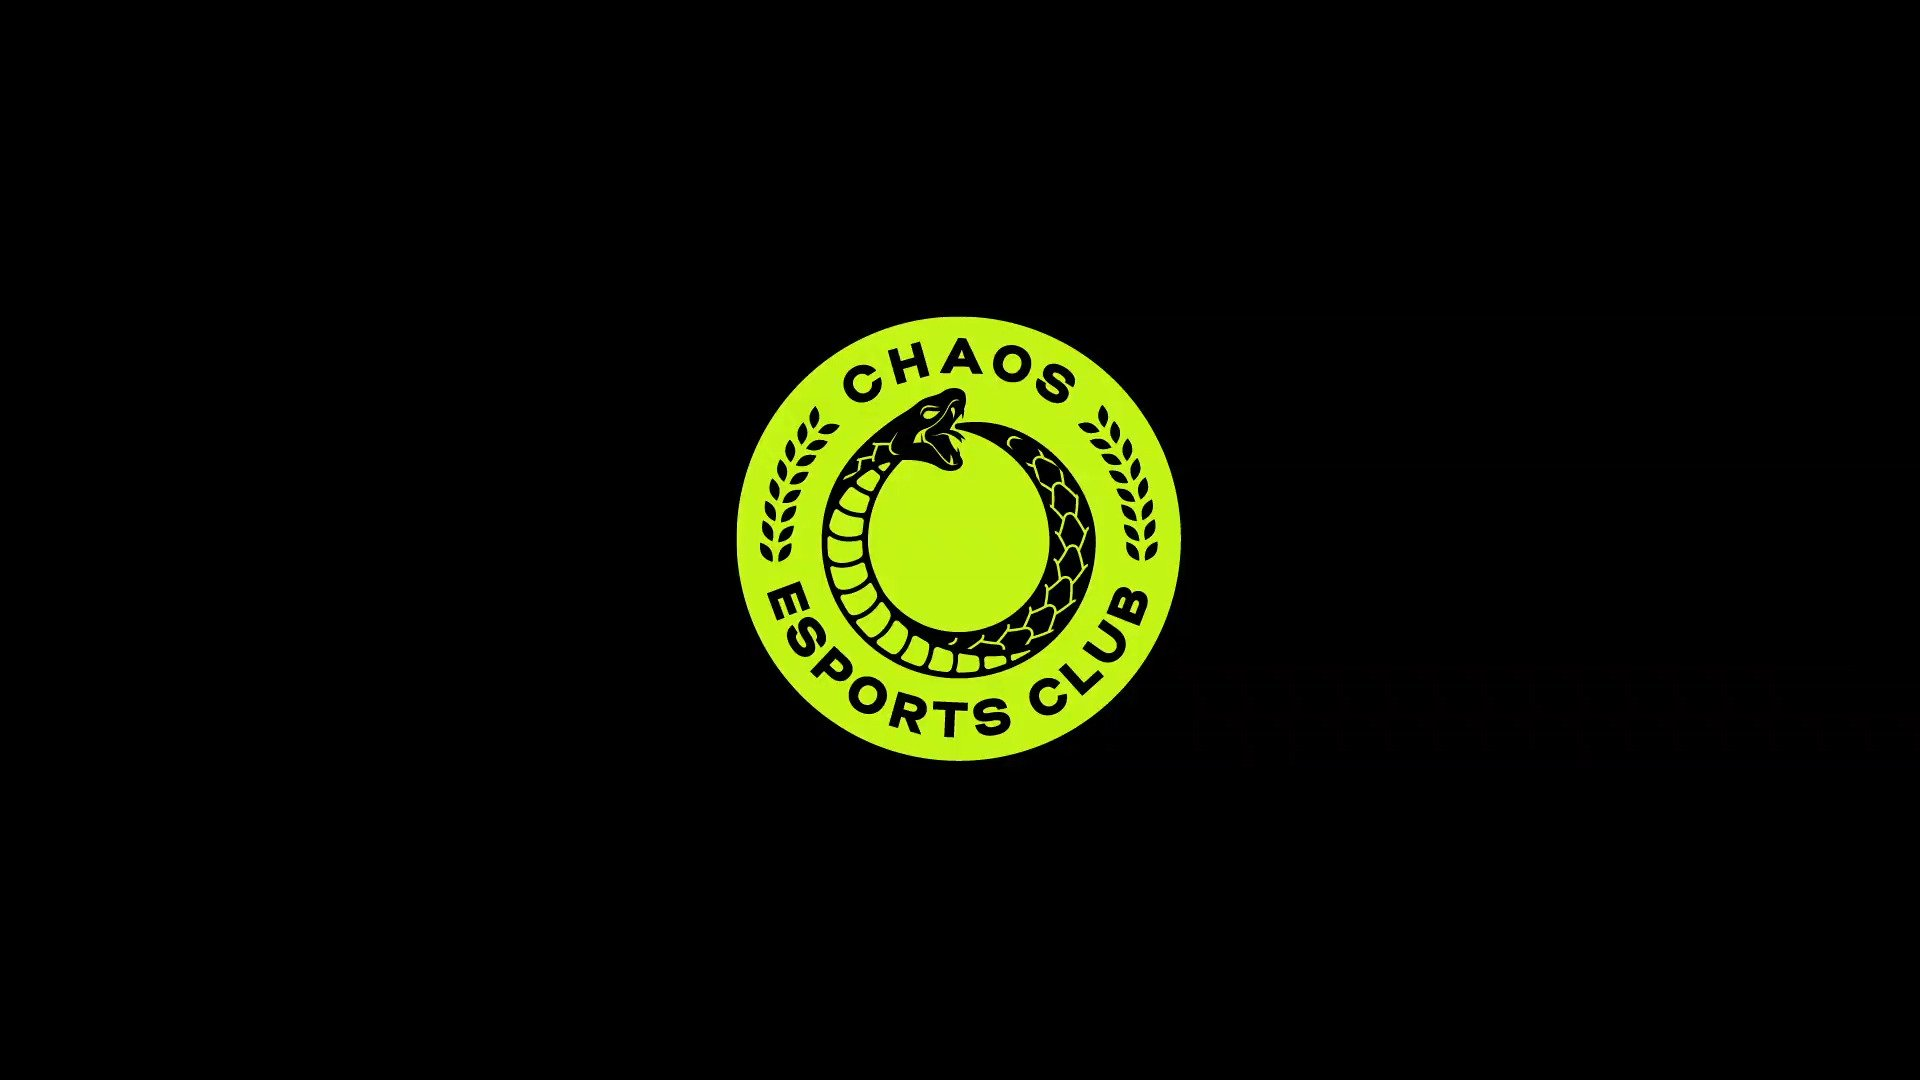 CS:GO – Chaos EC Confirm Rumors That They'll Need To Drop Their CS:GO Team After Impressive Season